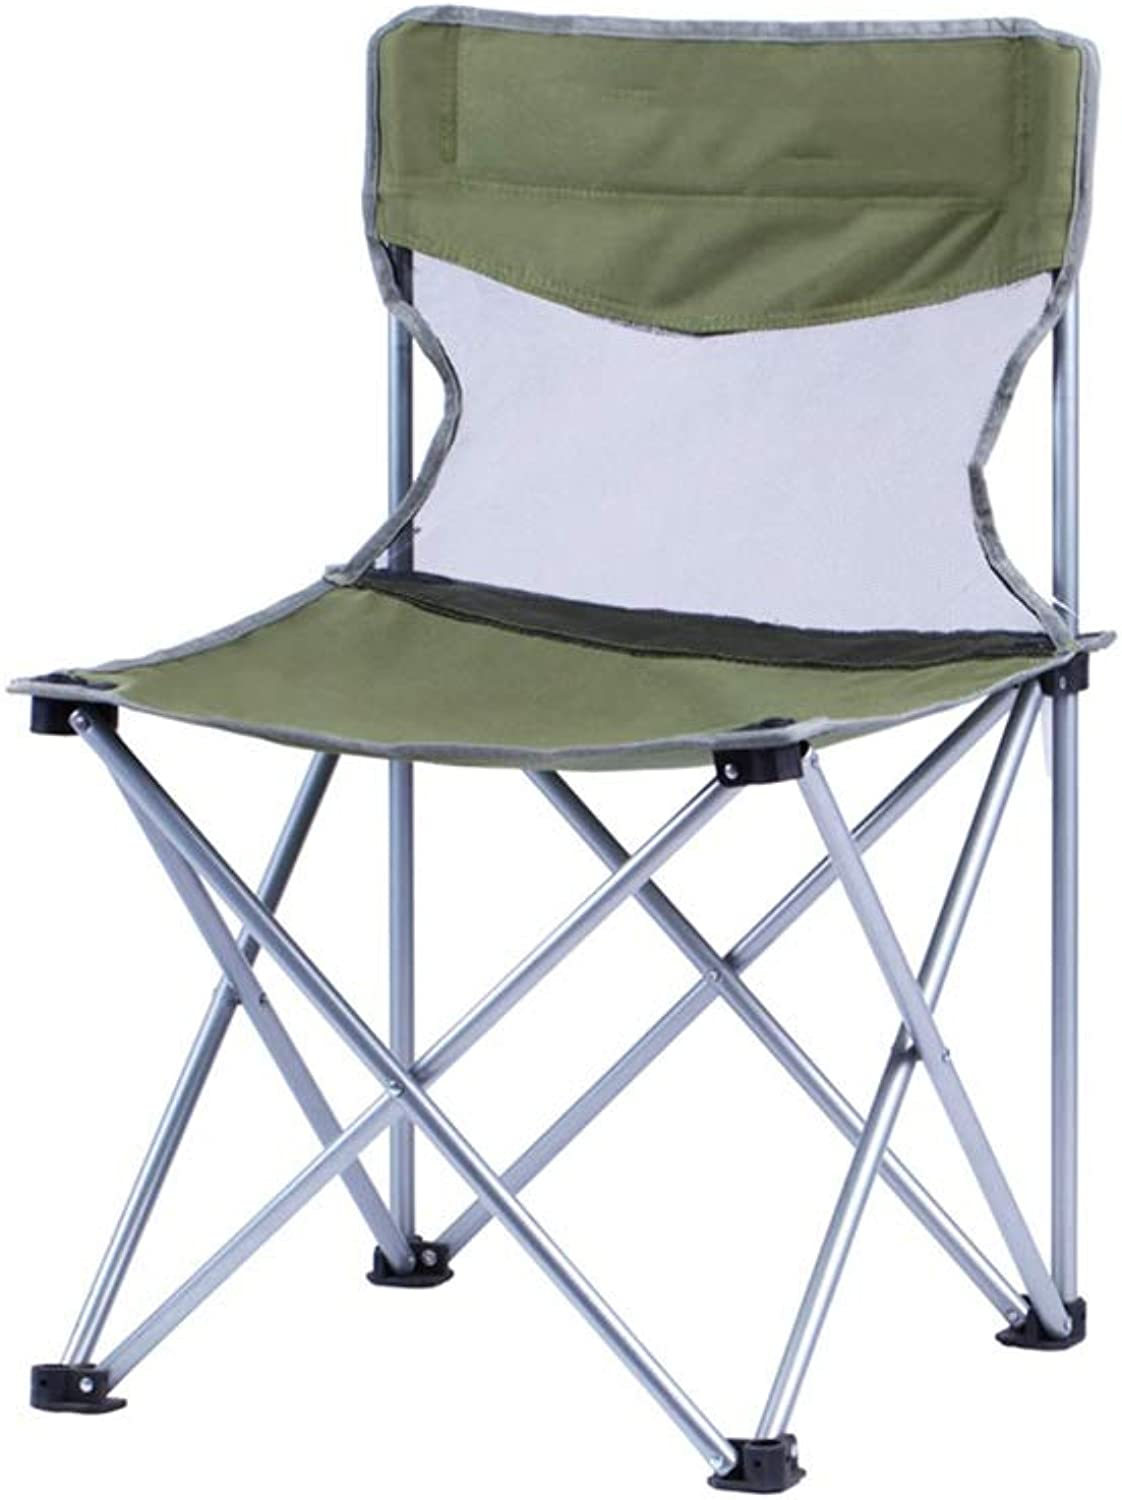 Camping Chair Folding Portable, with Cup Holder Pocket and Hard Armrest, Supports 200 Lbs